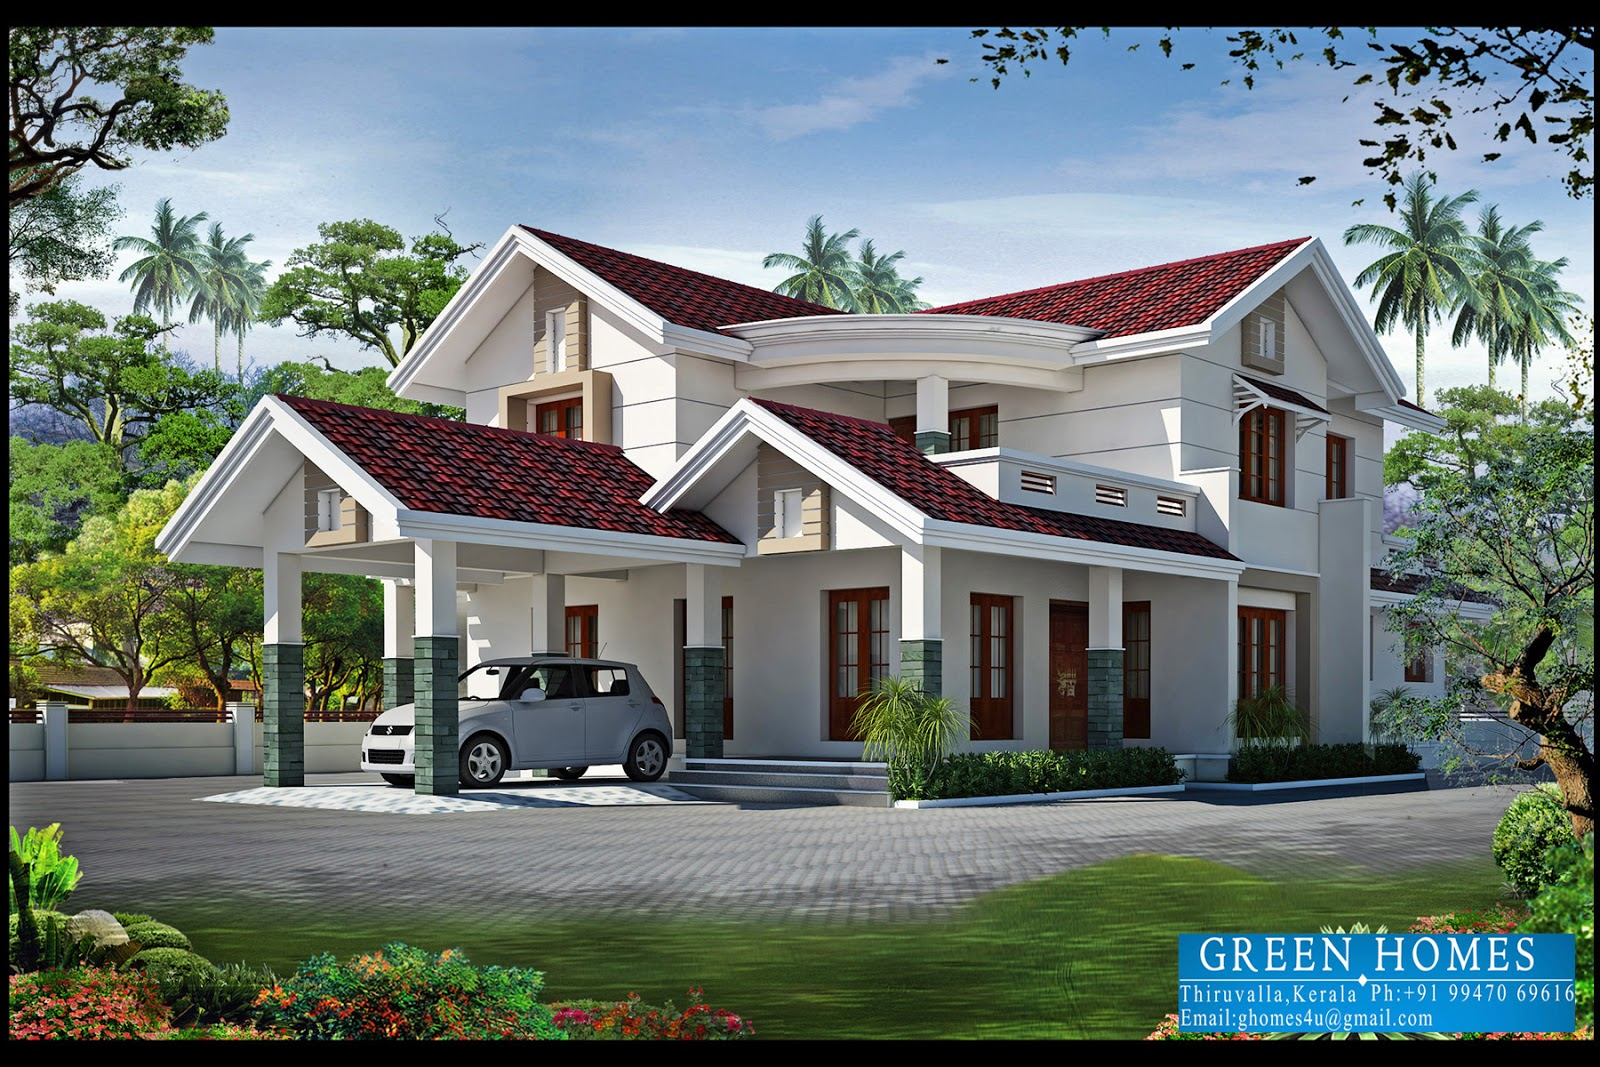 Green Homes 4bhk Kerala Home Design 2550: new home models